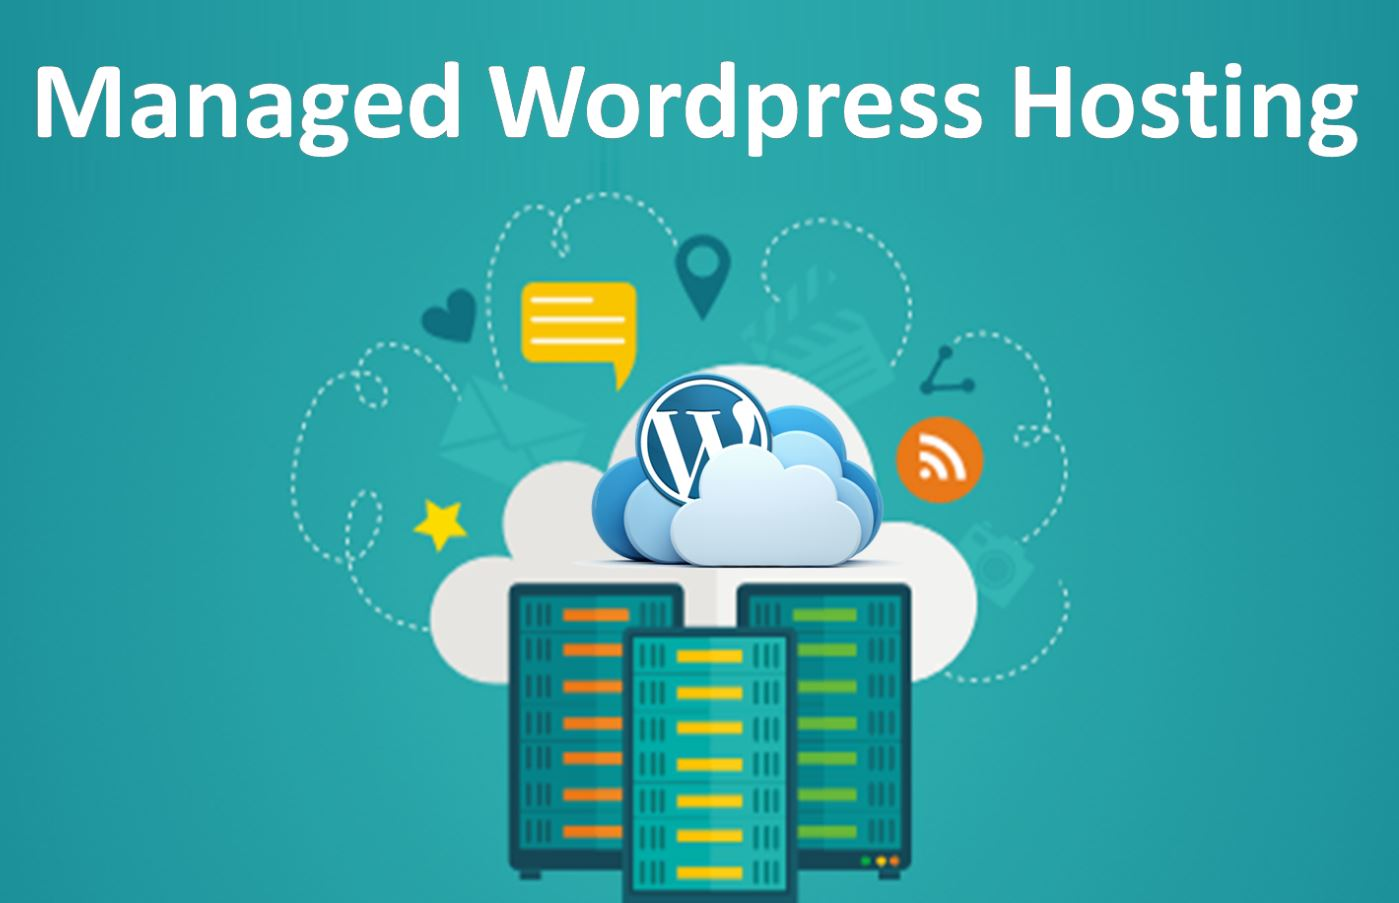 Few Reasons to Choose the Managed WordPress Hosting